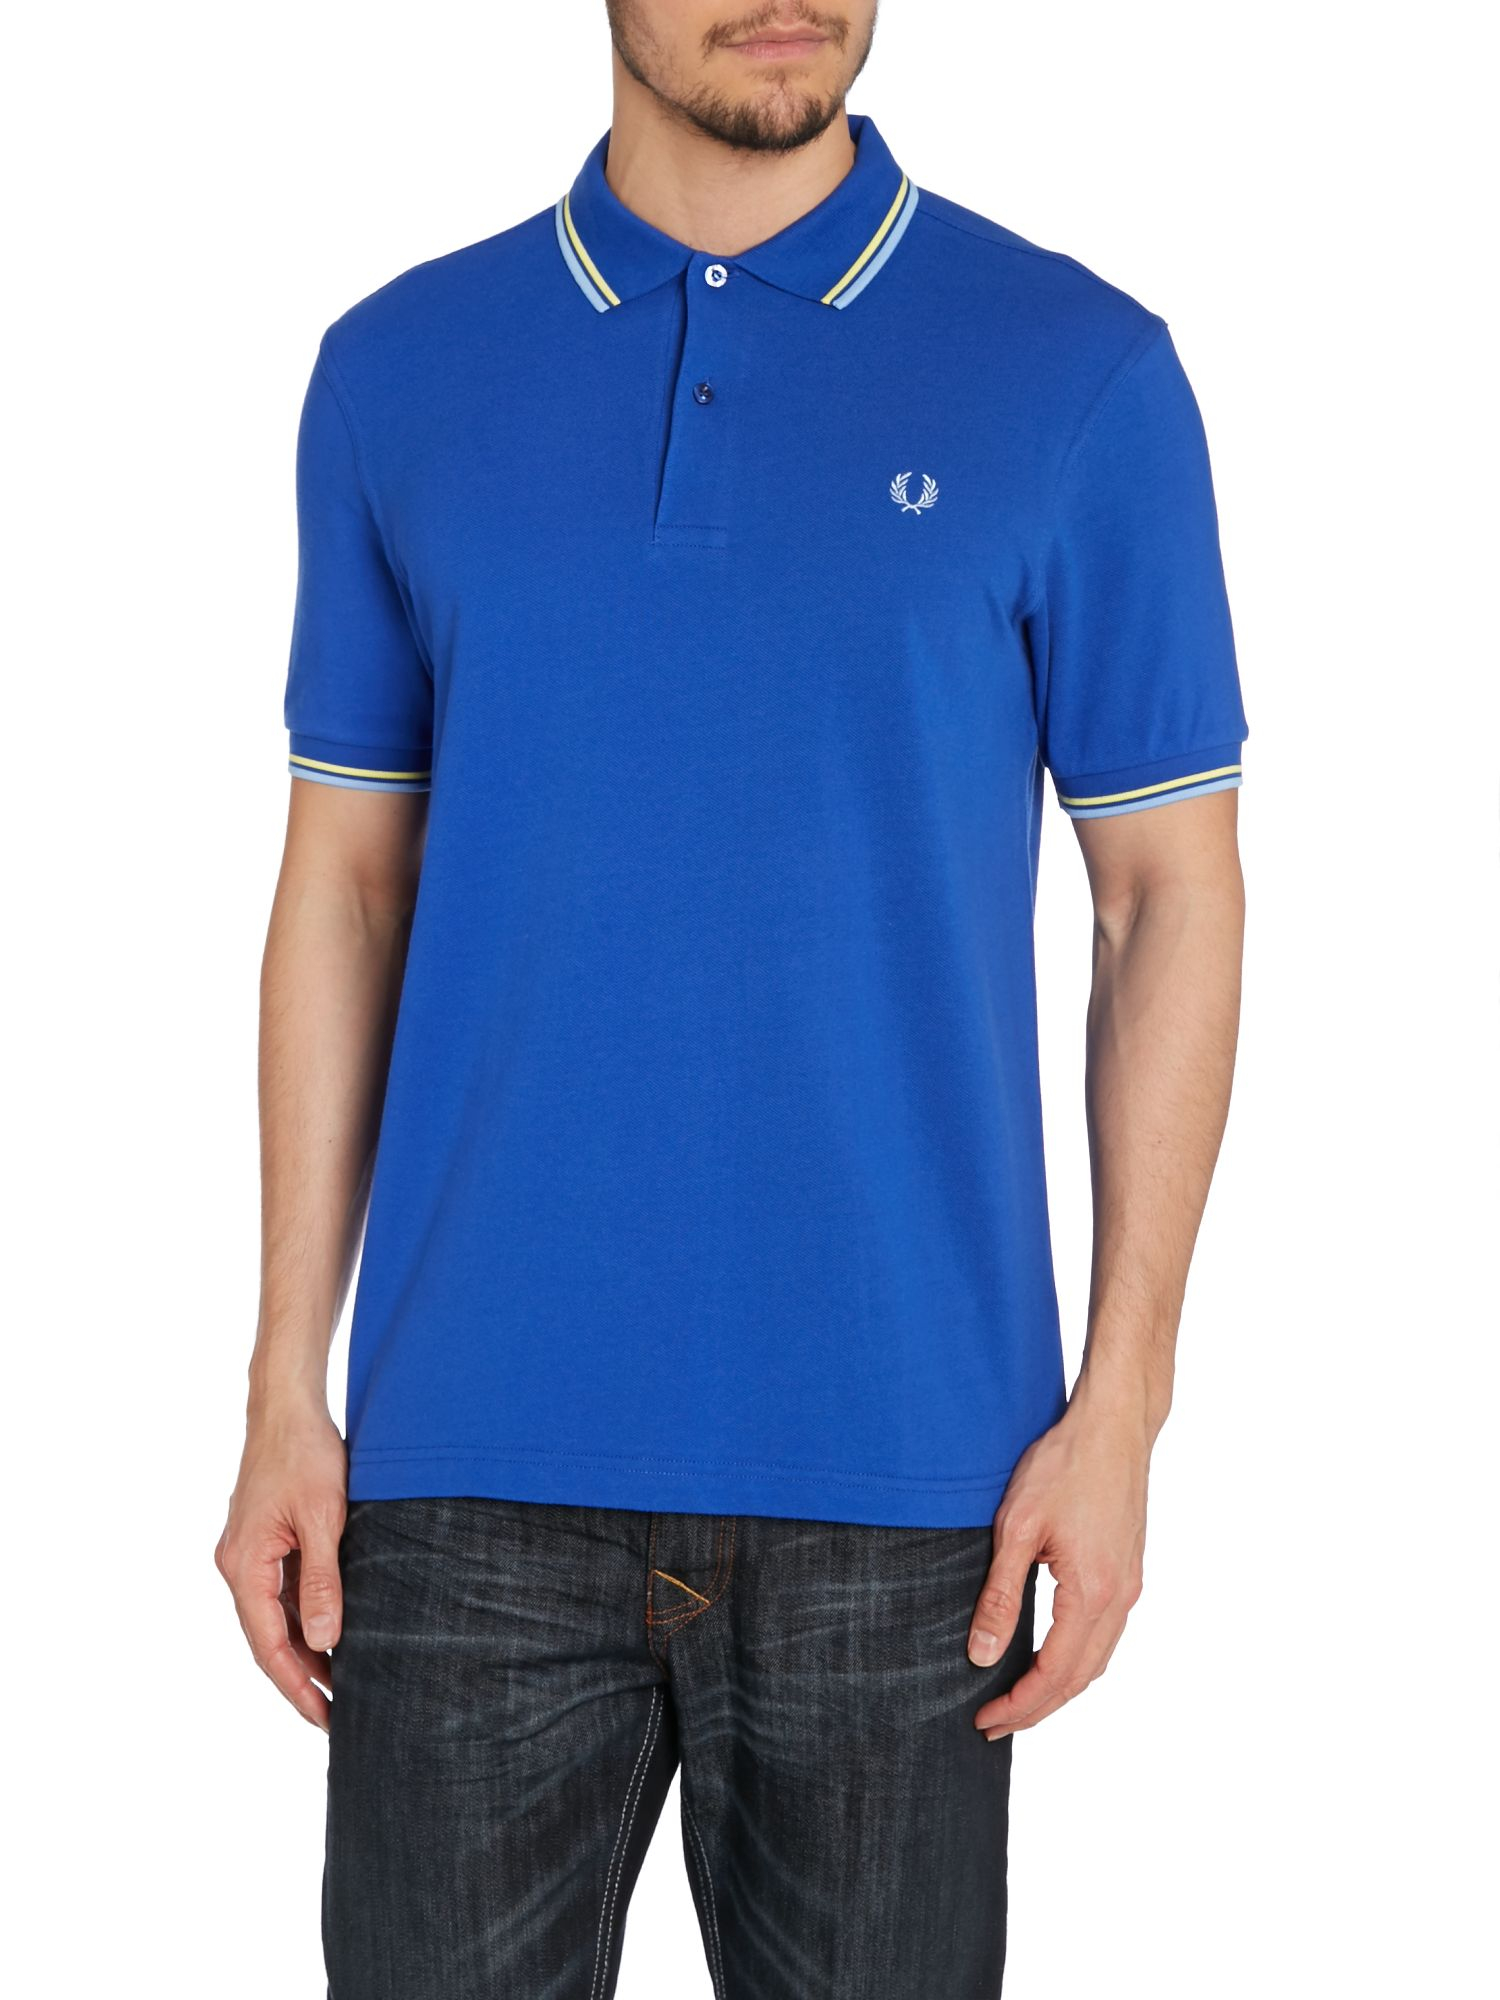 fred perry twin tipped regular fit polo shirt in blue for men lyst. Black Bedroom Furniture Sets. Home Design Ideas